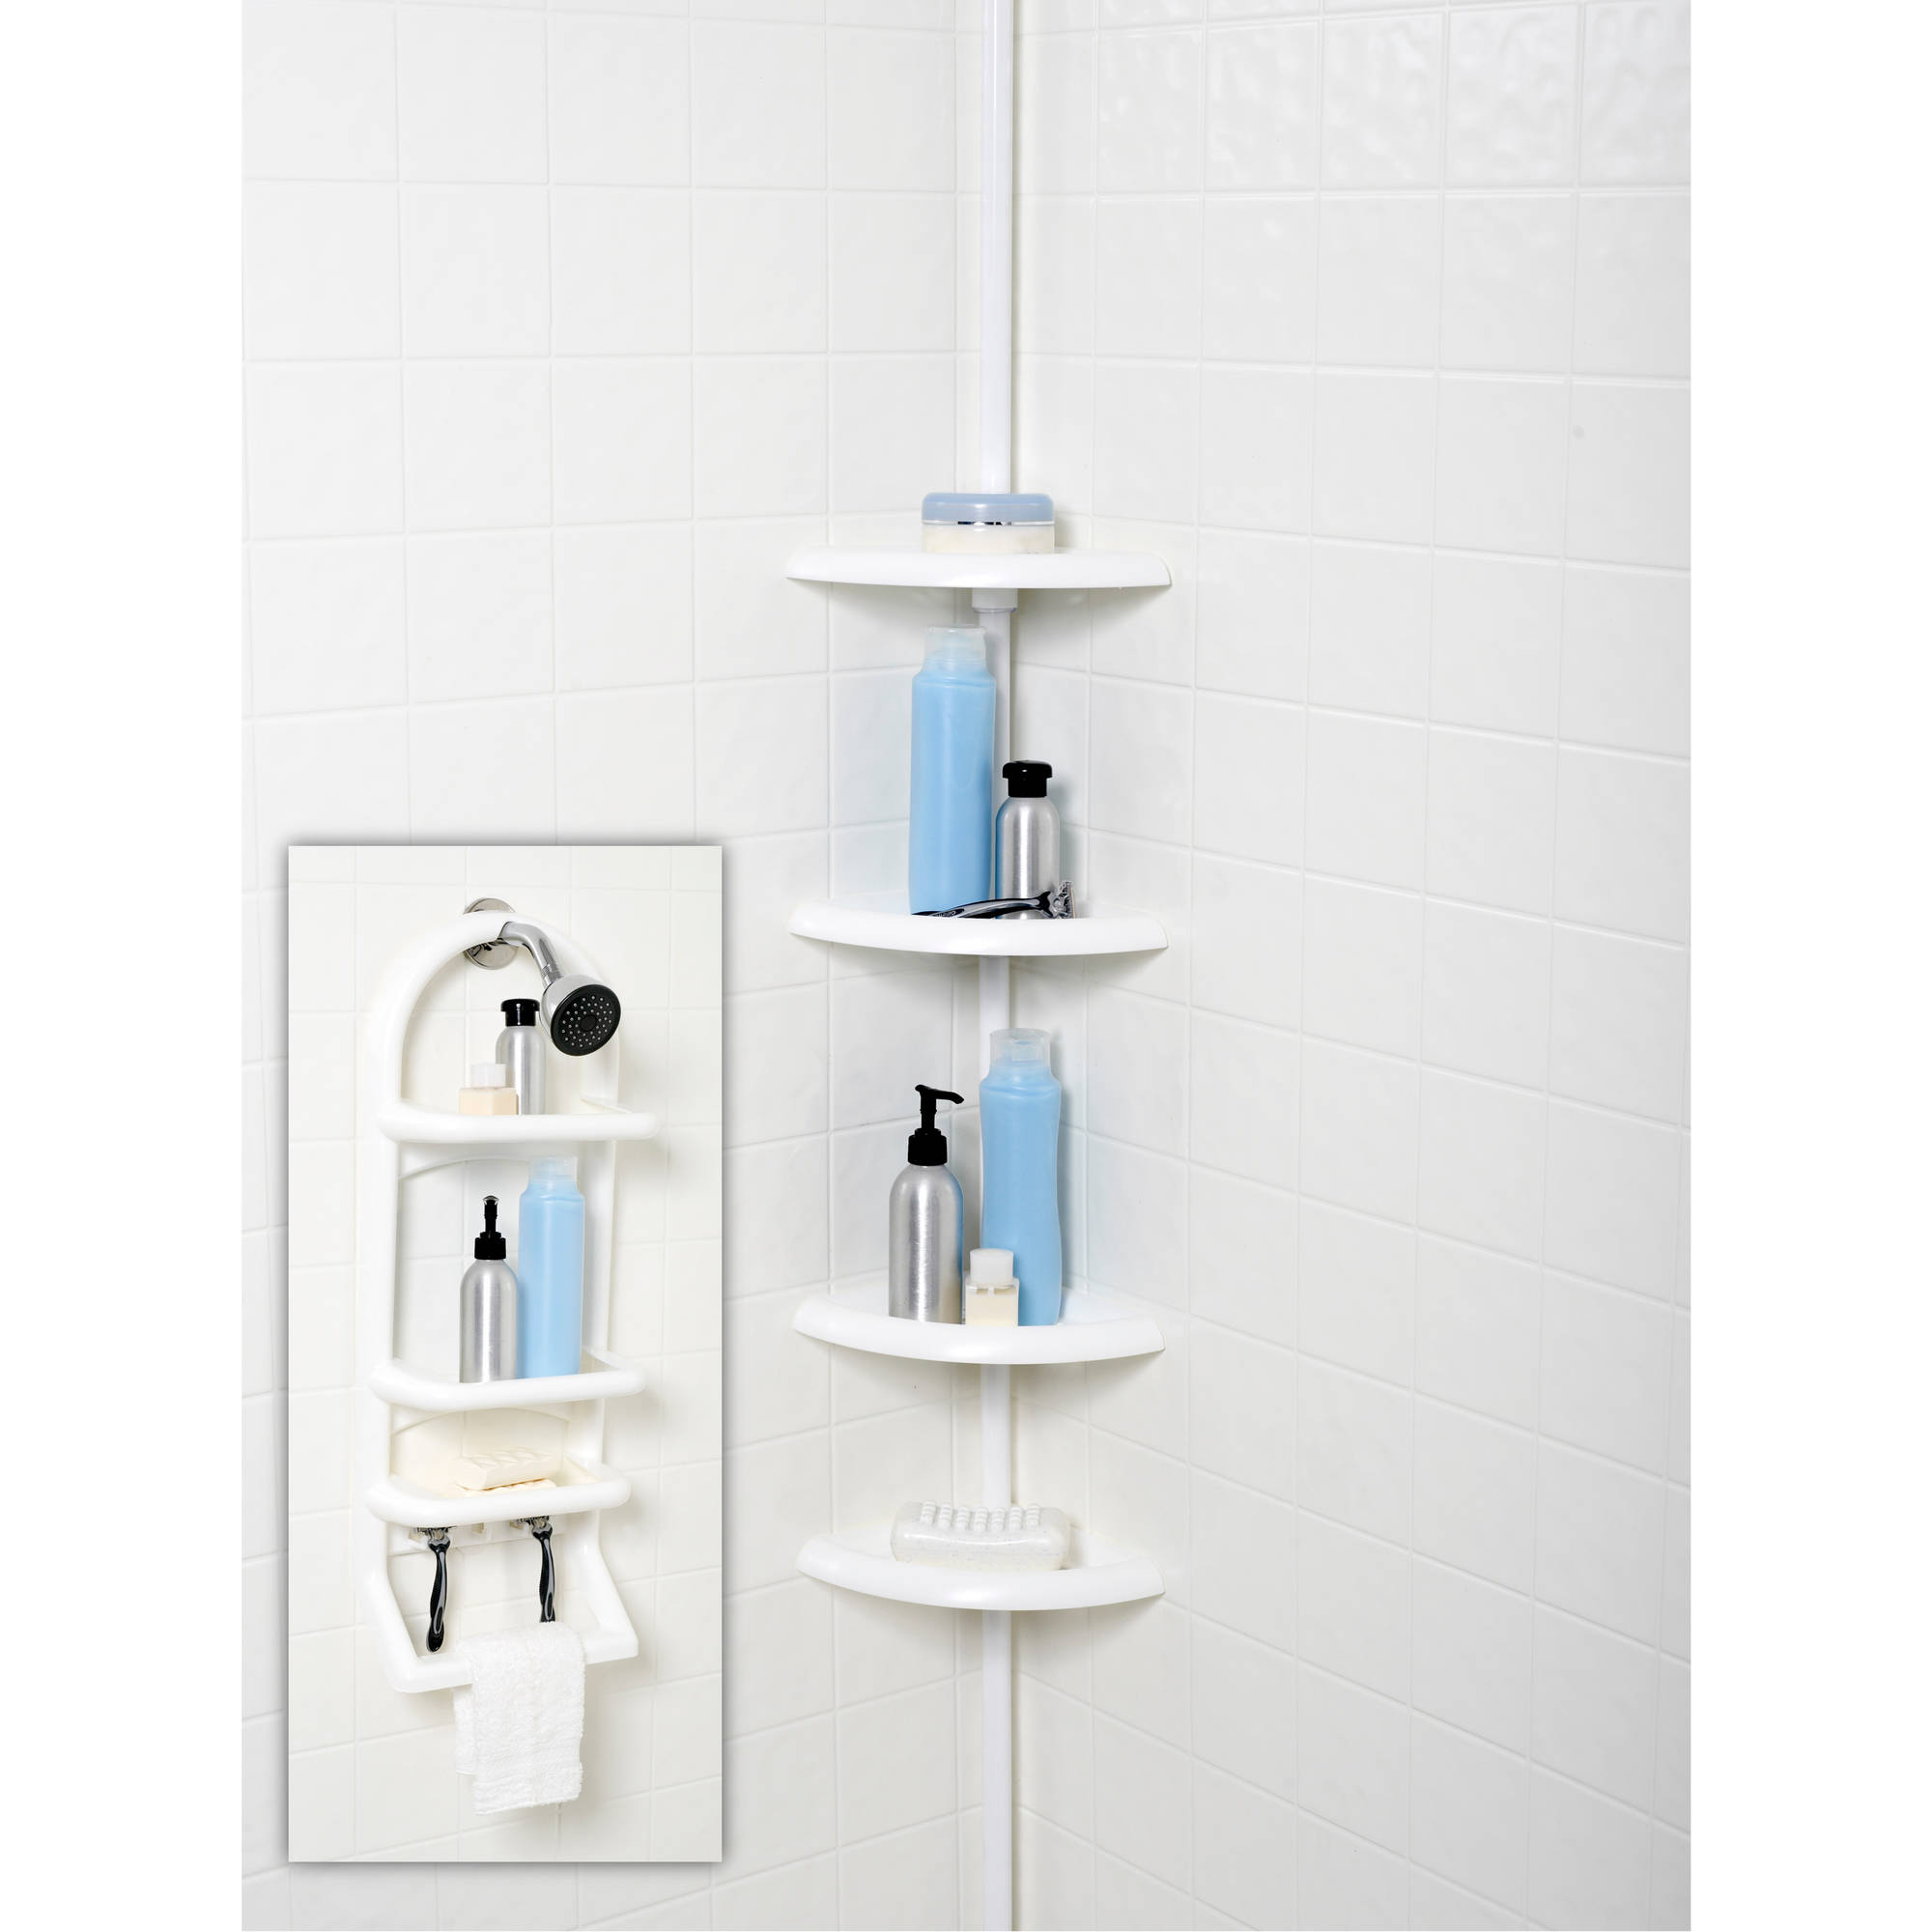 2-Piece Shower Caddy Set, White by Zenith Products